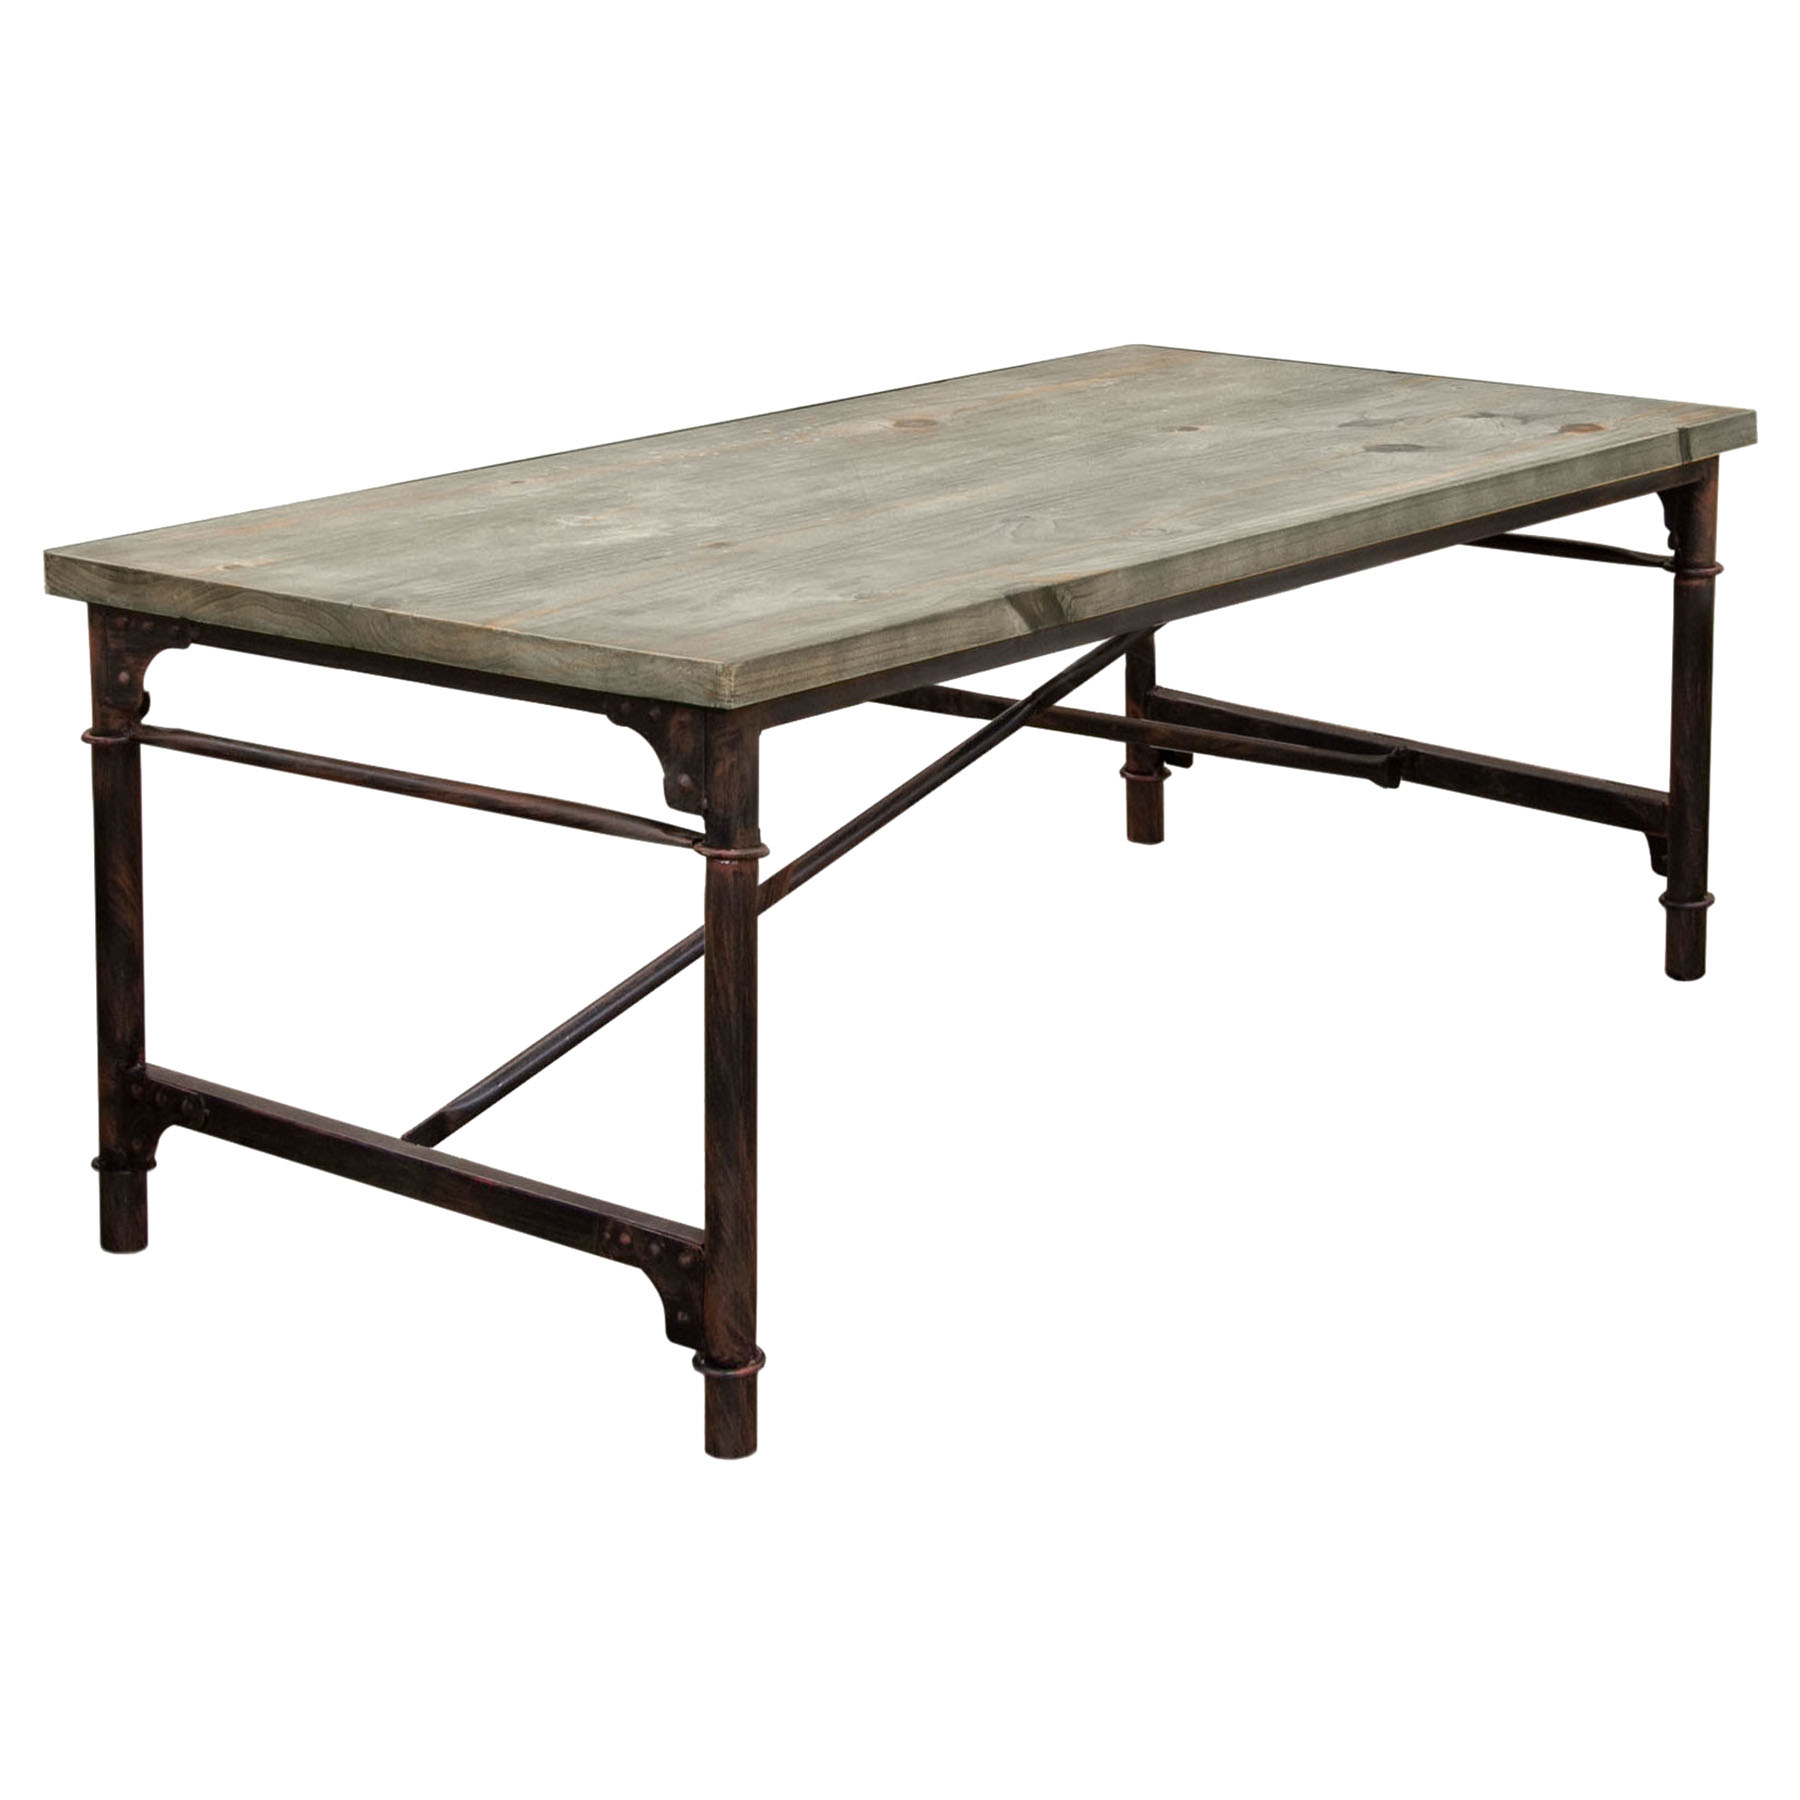 Dixon Rectangular Dining Table Weathered Gray Black  : dixondtbl 1 from www.dcgstores.com size 1800 x 1800 jpeg 135kB